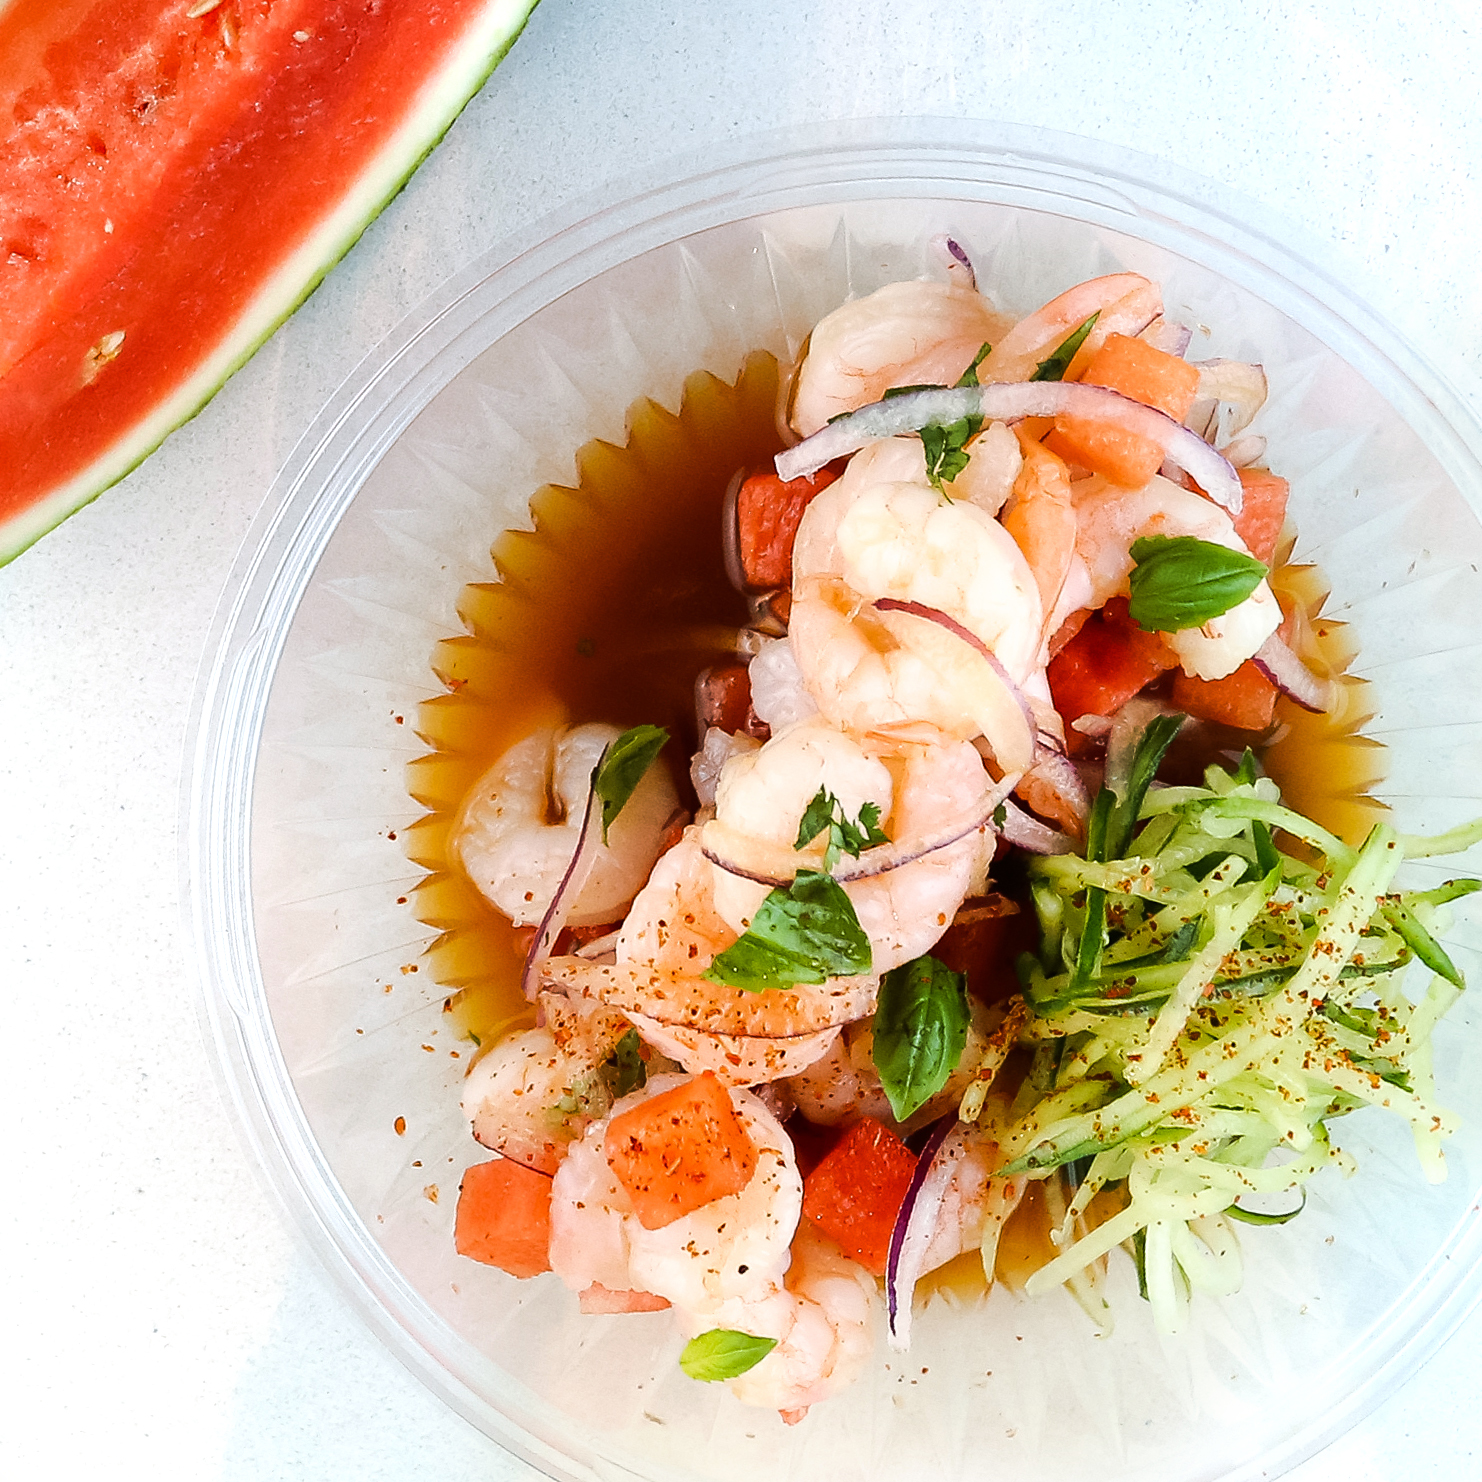 My Ceviche Shrimp and Watermelon Ceviche